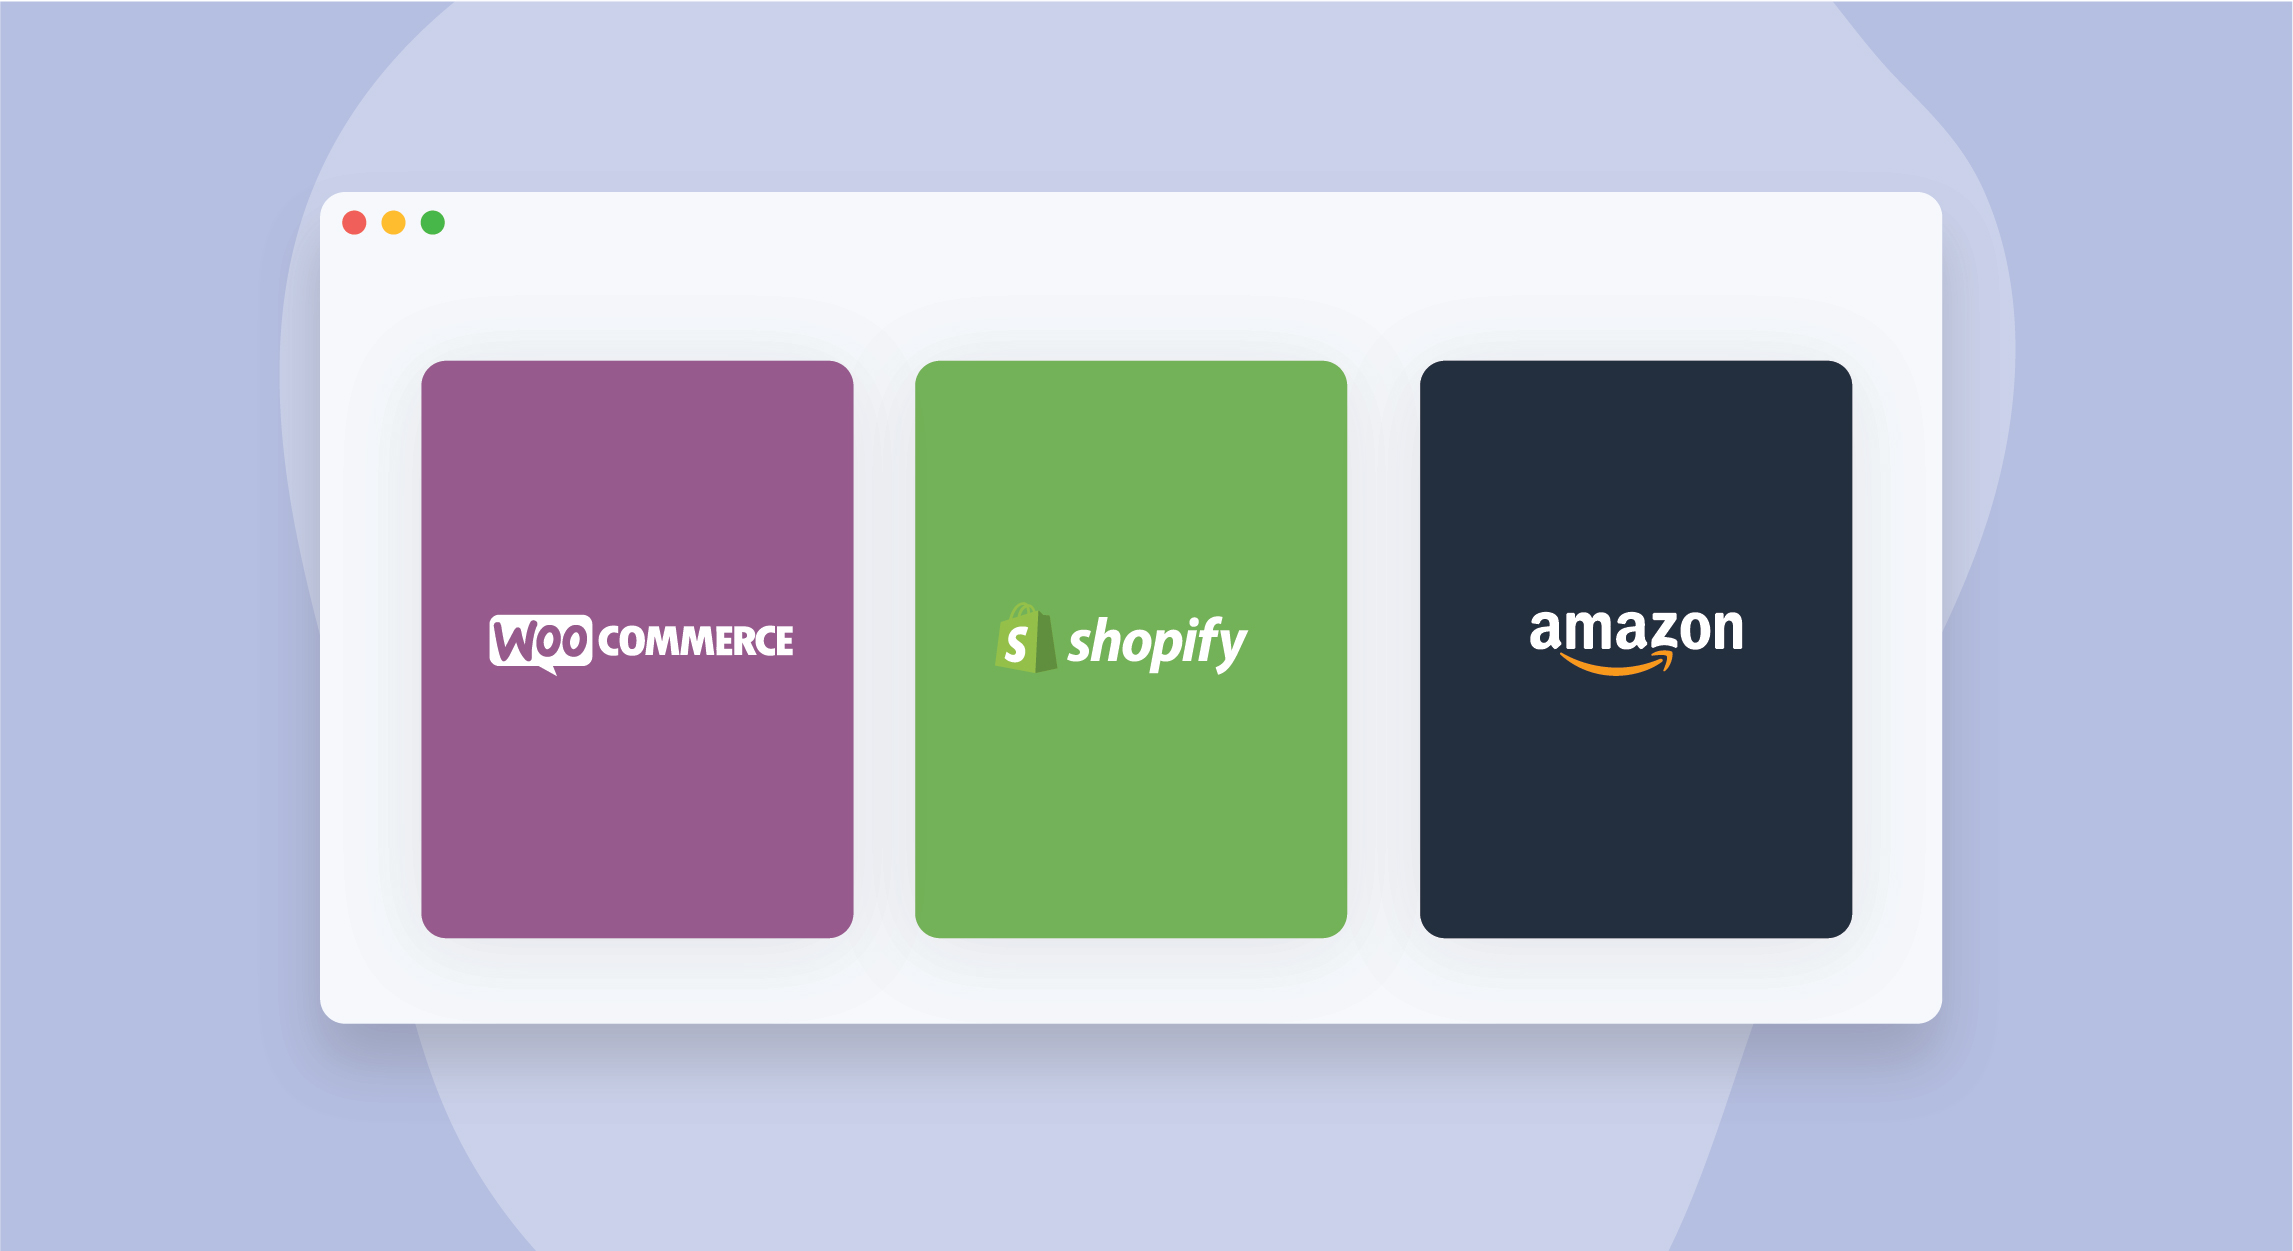 Ecommerce platform illustrations with logos for woocommerce, shopify, and amazon